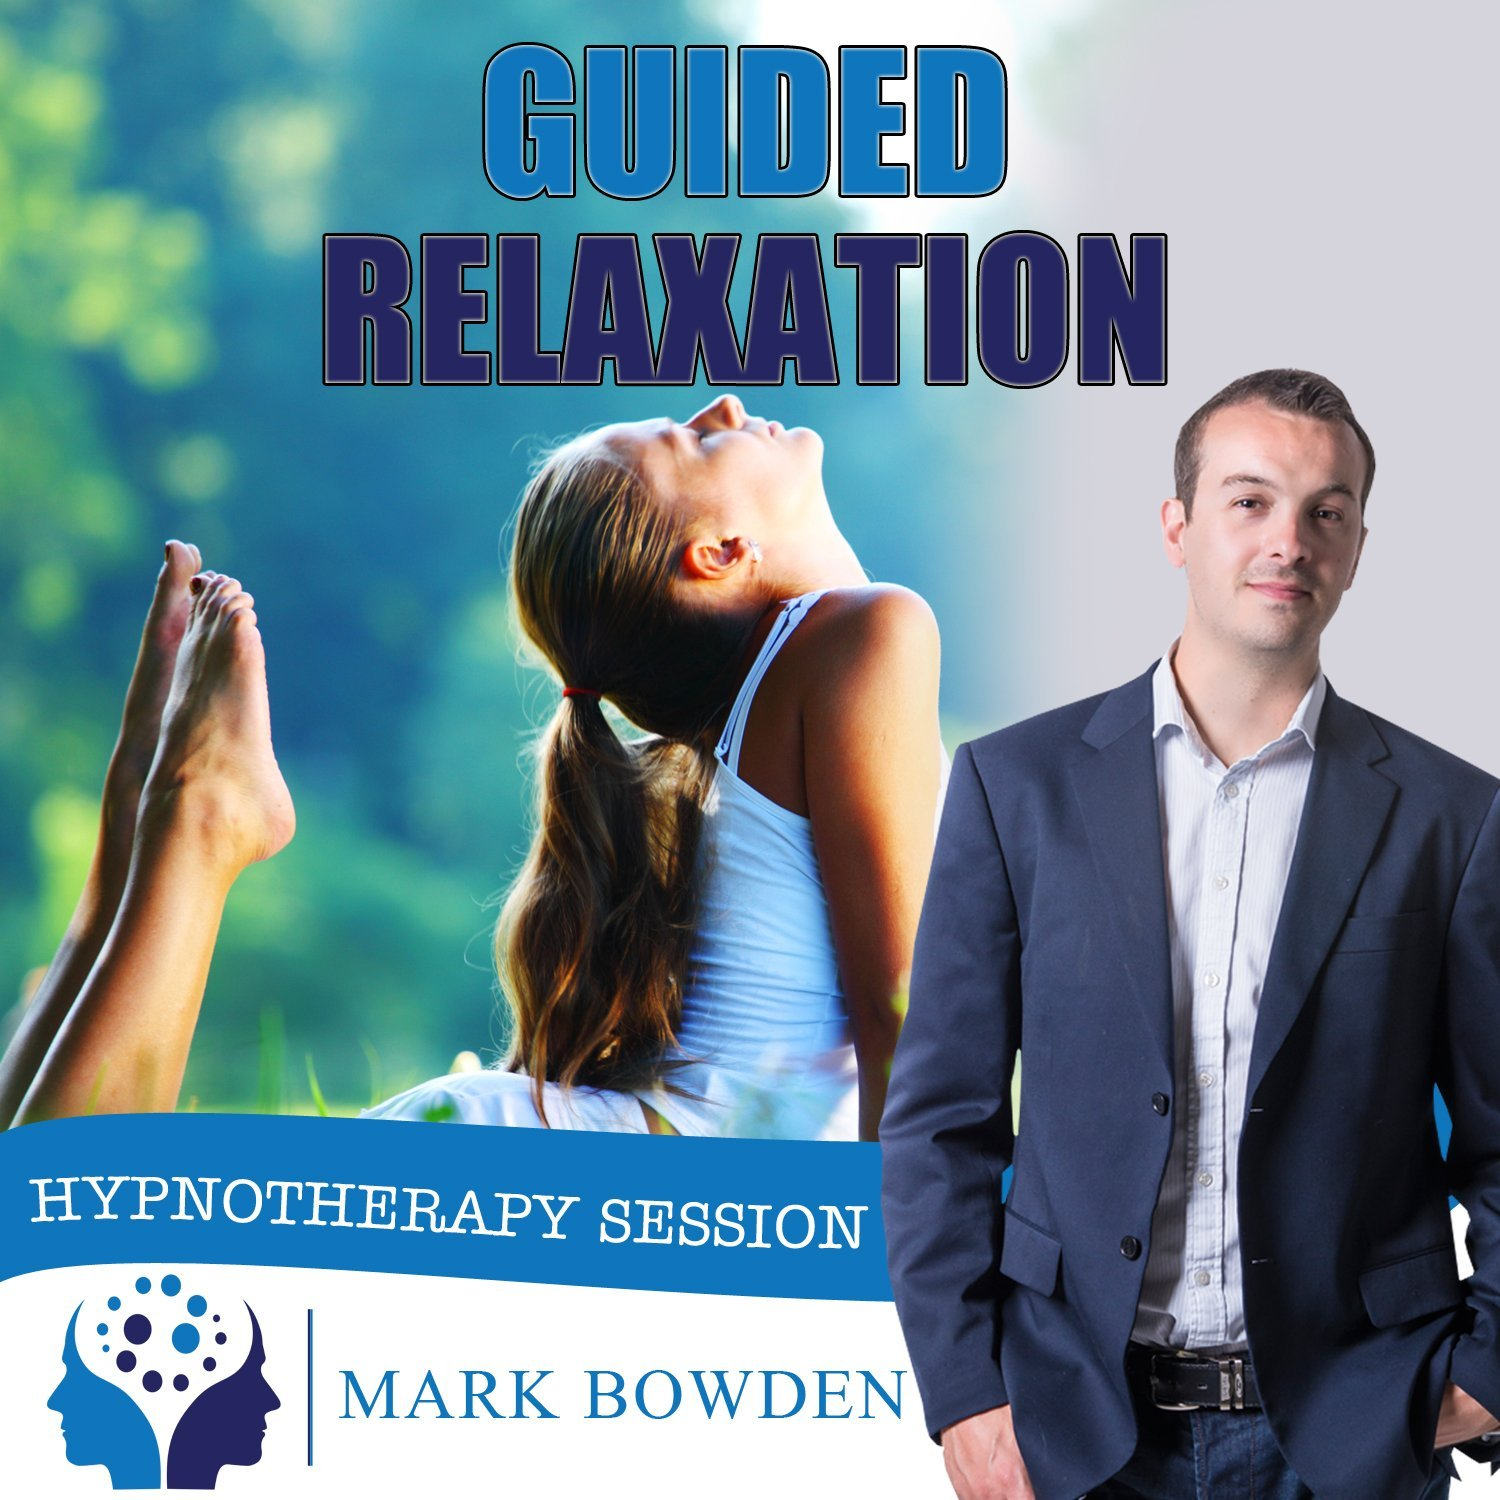 Guided relaxation Hypnosis / Hypnotherapy CD - Alleviate Tension and Stress Relief by Mark Bowden